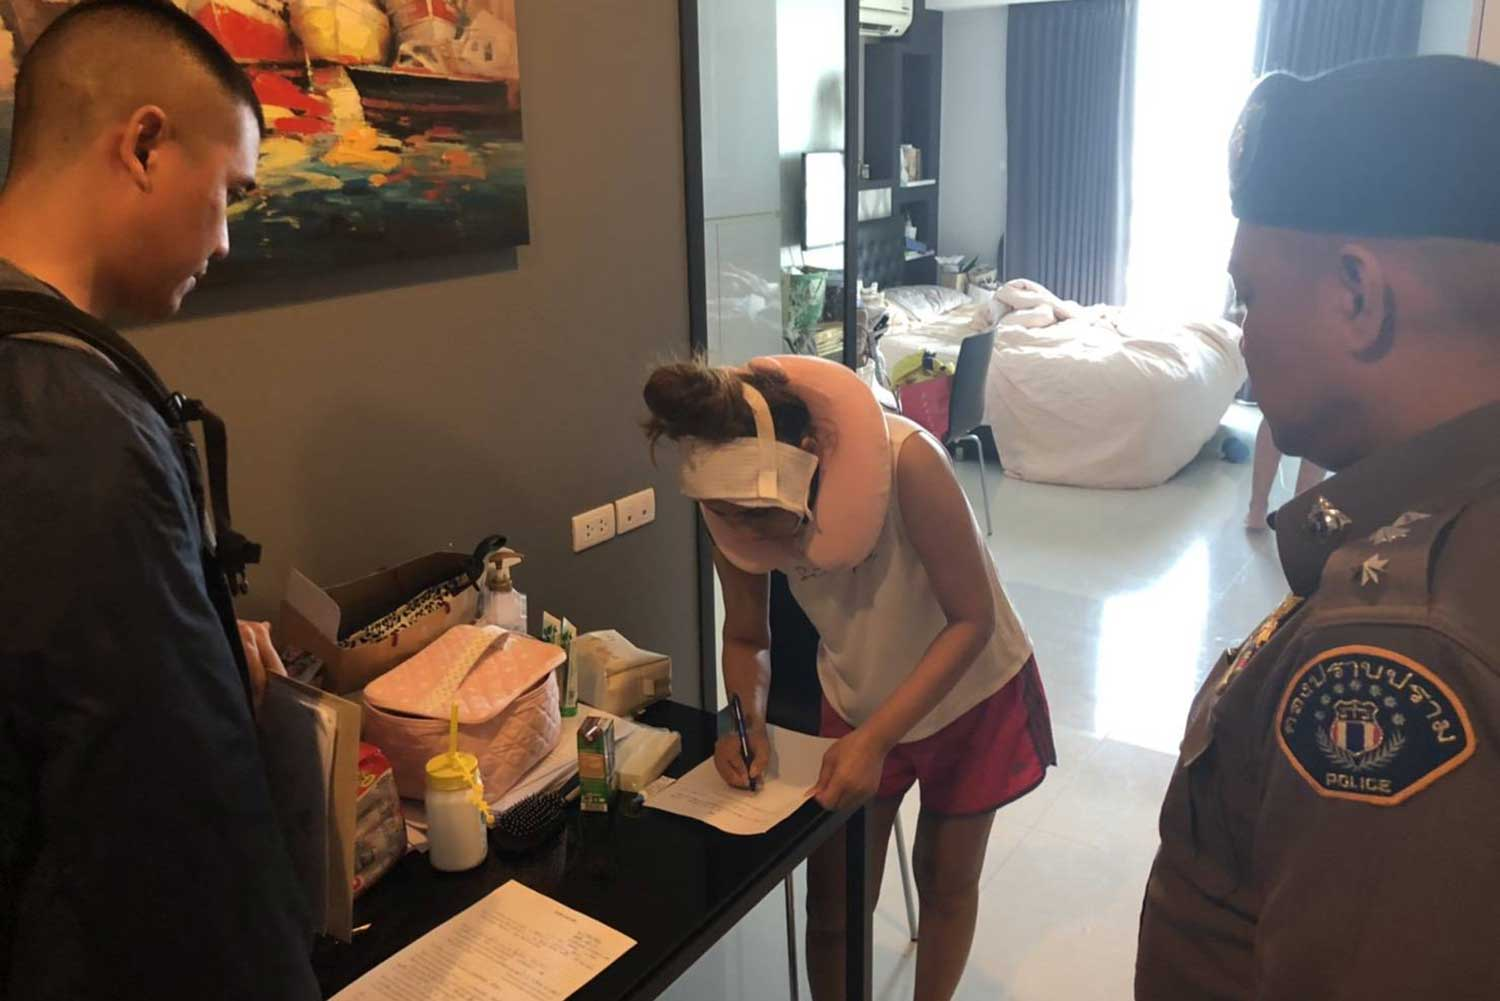 Fashion model Sriwipha Wattanawansap signs papers at her condominium as police officers look on following her arrest on fraud charges. (Crime Suppression Division photo)